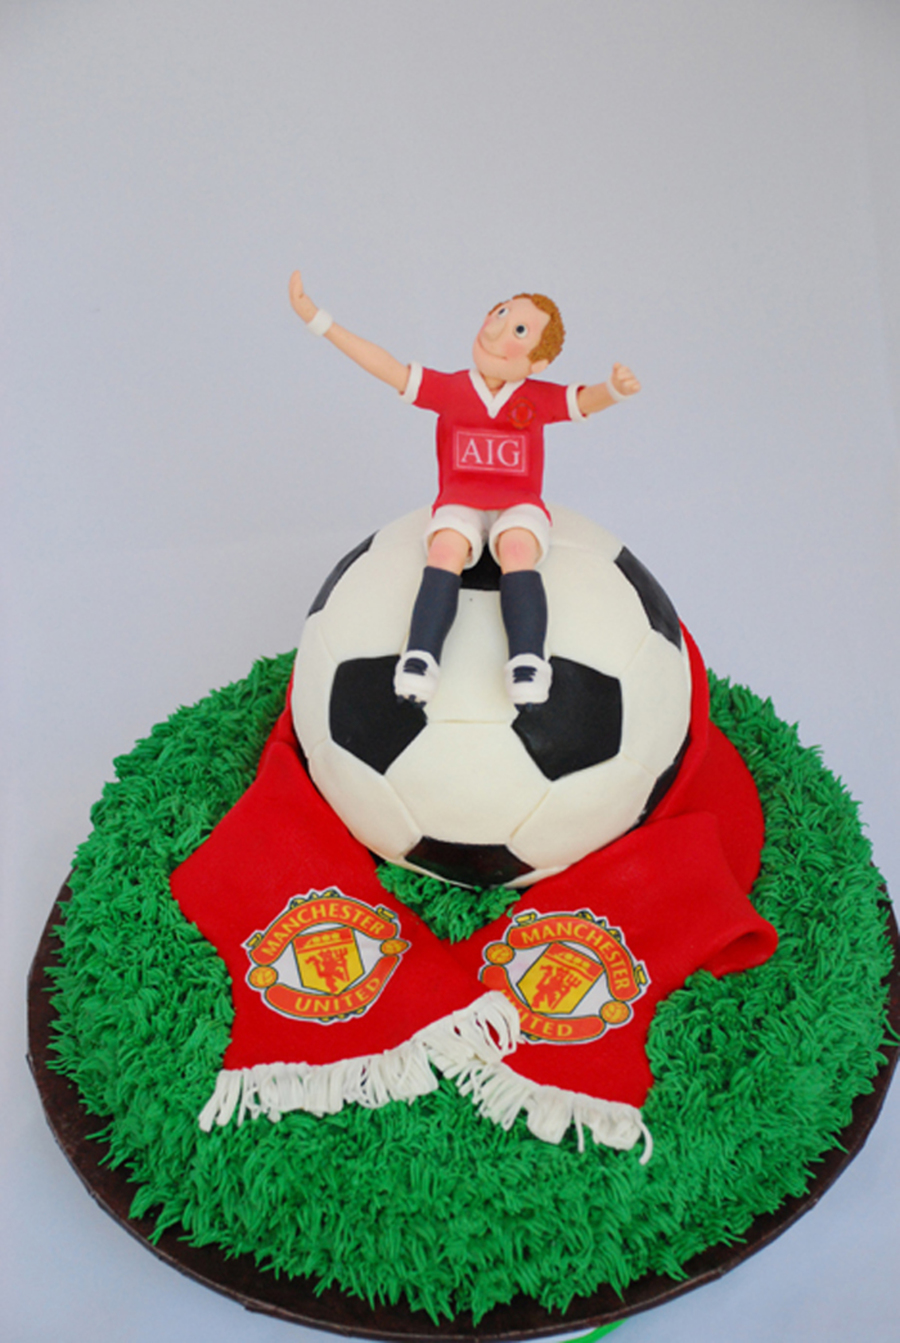 Groom S Soccer Ball Manchester United Cake Cakecentral Com